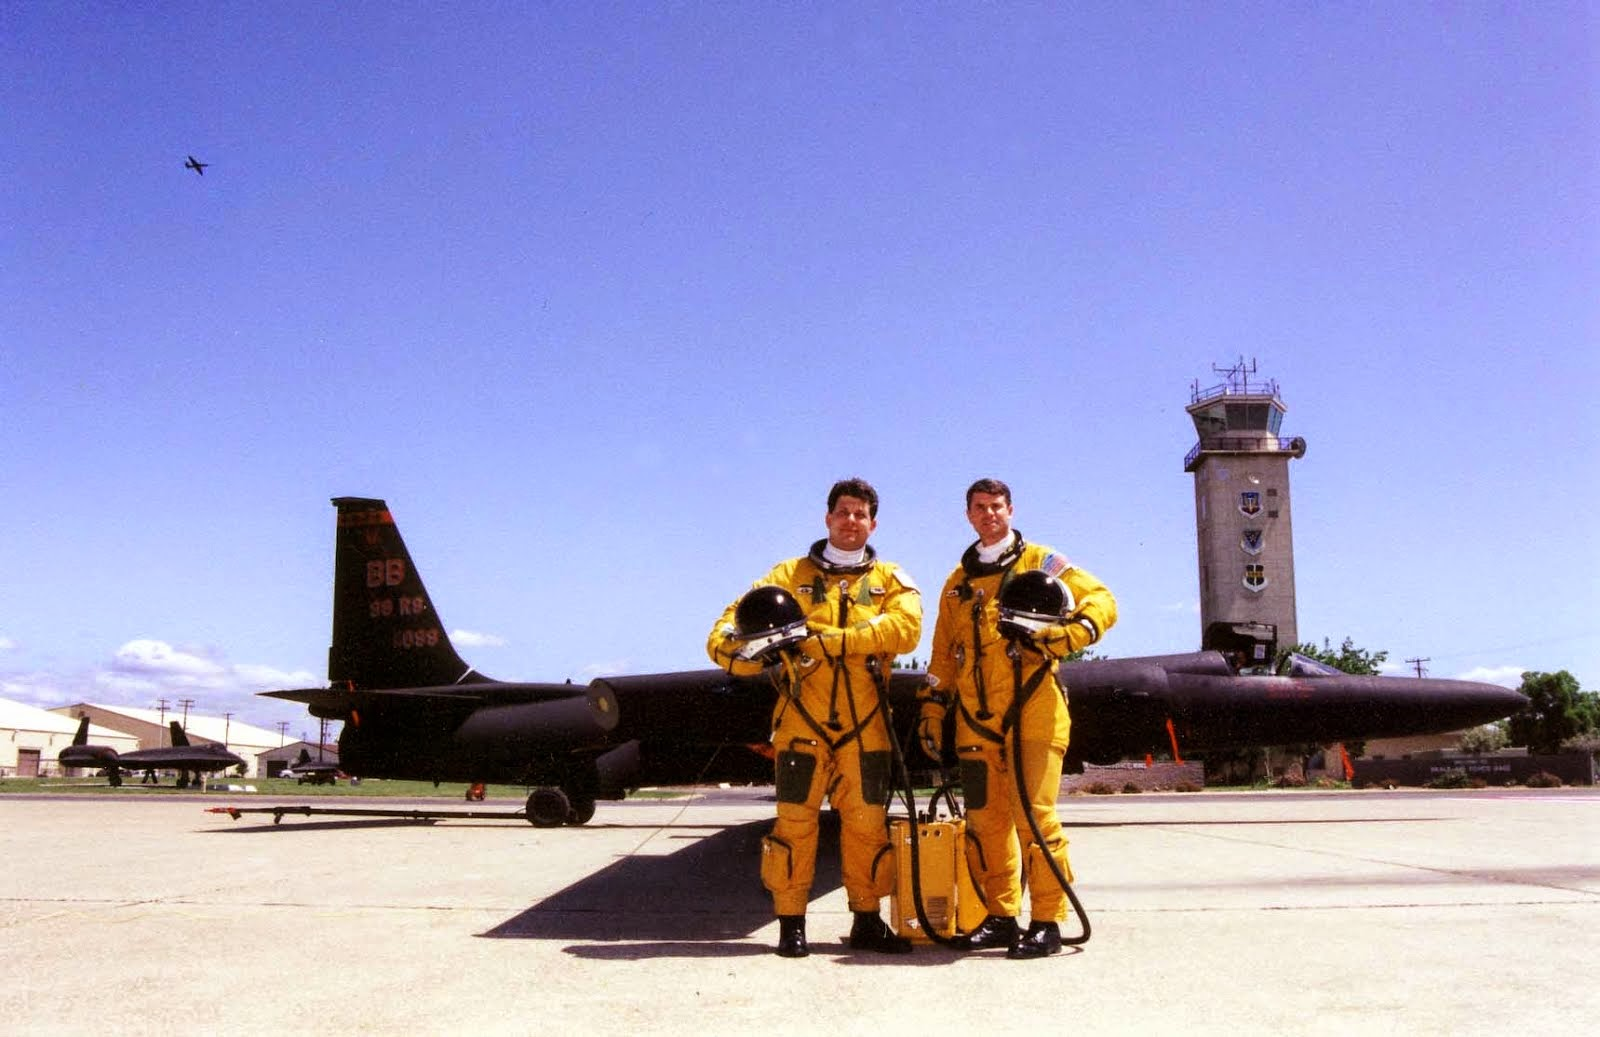 LtCol Bryan Anderson takes Gary Powers Jr. for a ride in the U-2 dragonlady